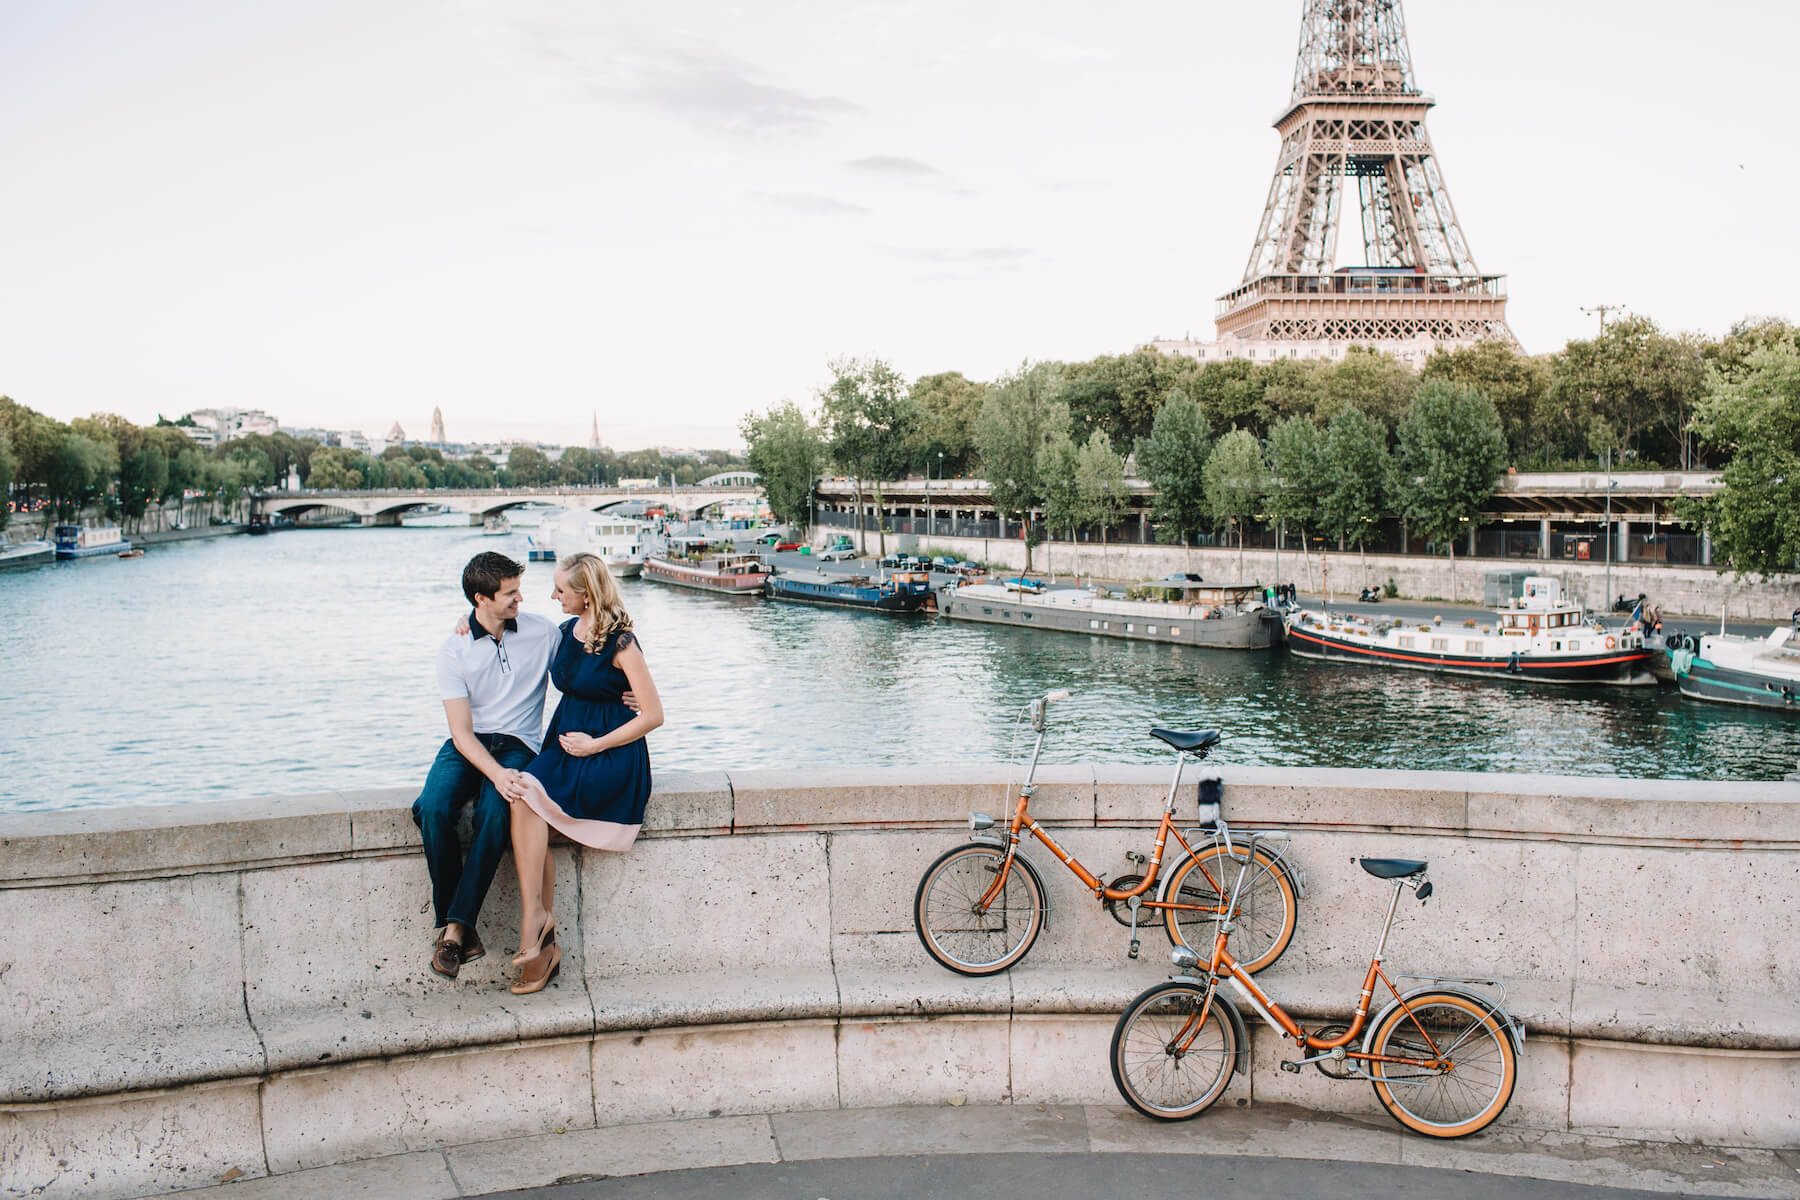 a couple sitting on a ledge, she is pregnant and holding her belly in front of the Eiffel Tower in Paris, France